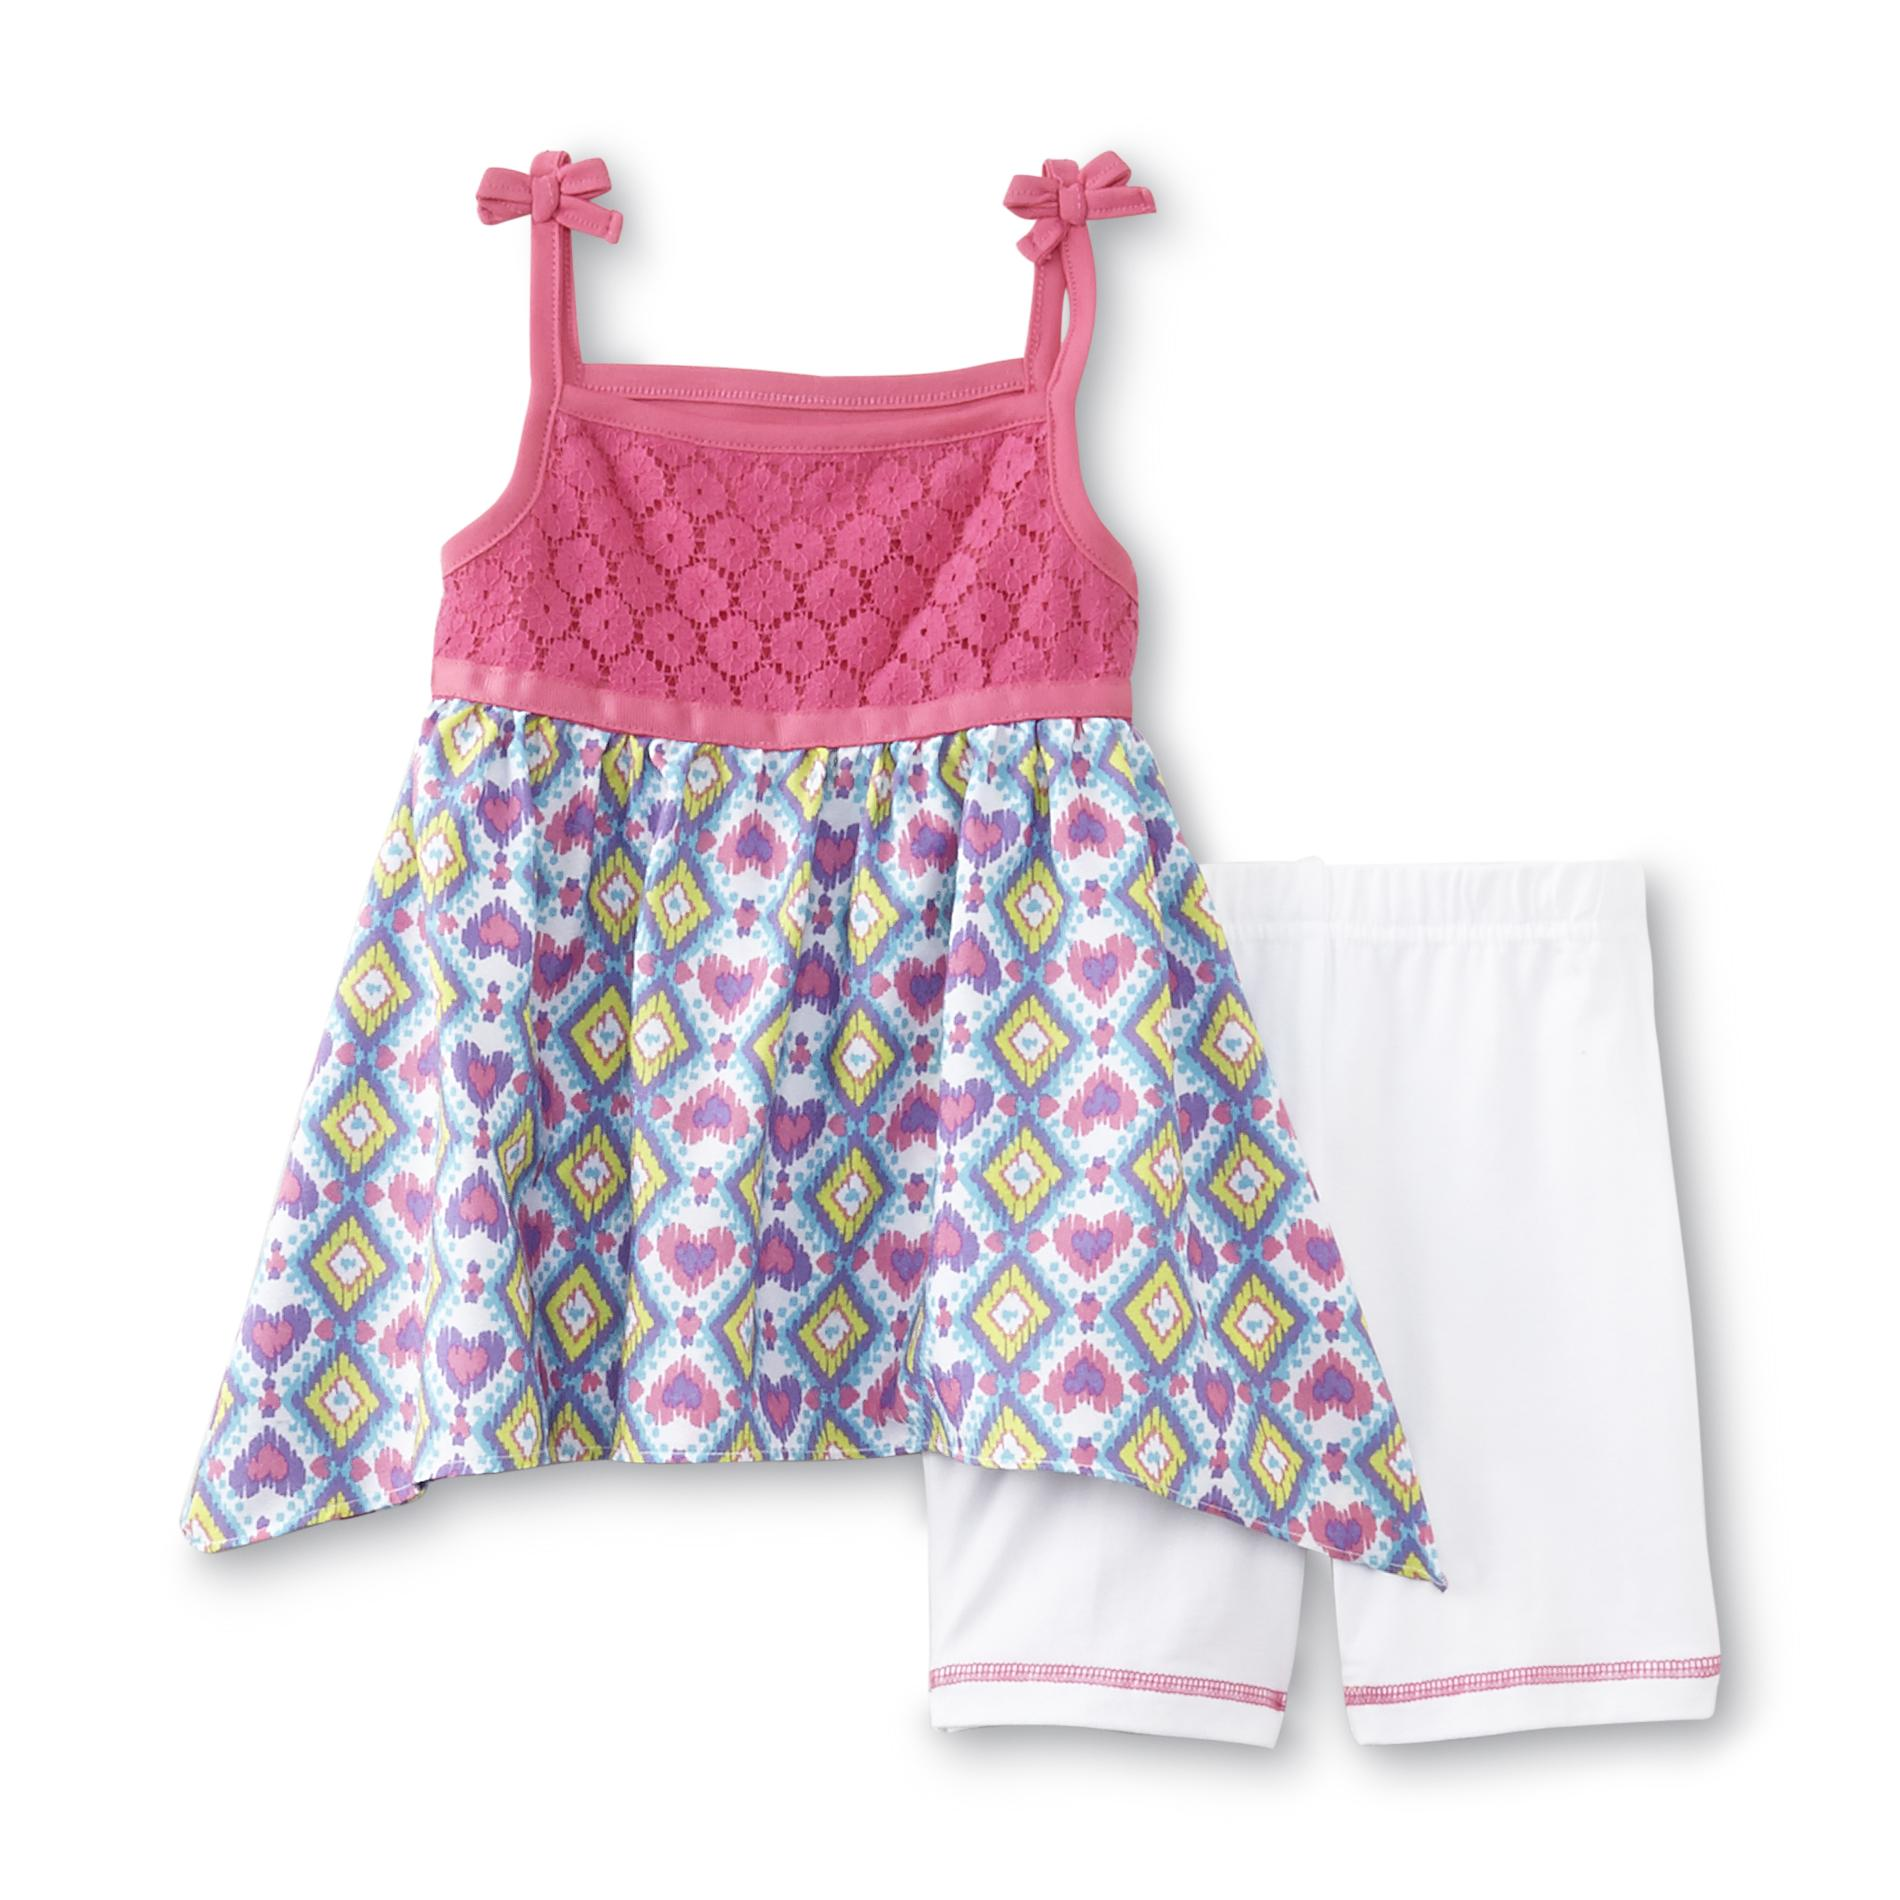 WonderKids Infant & Toddler Girl's Tunic Top & Shorts - Hearts